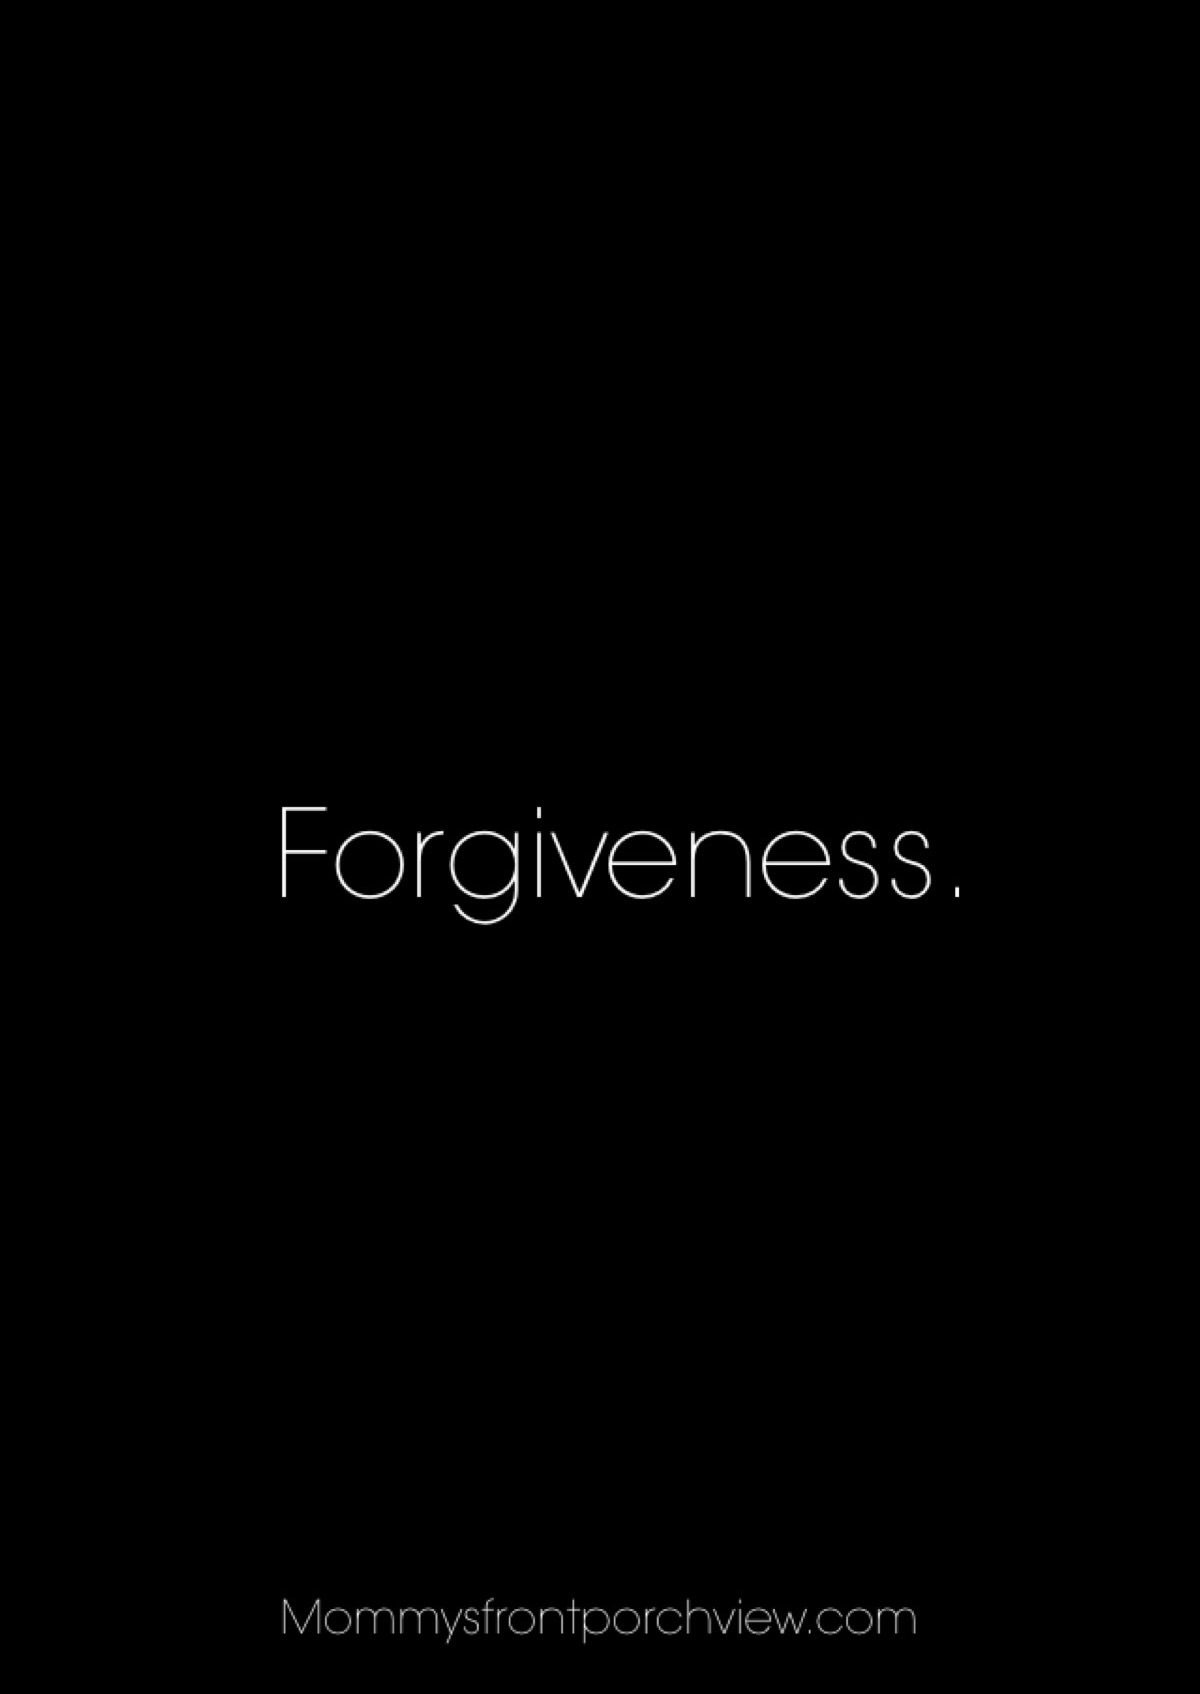 They Say Forgiveness Image